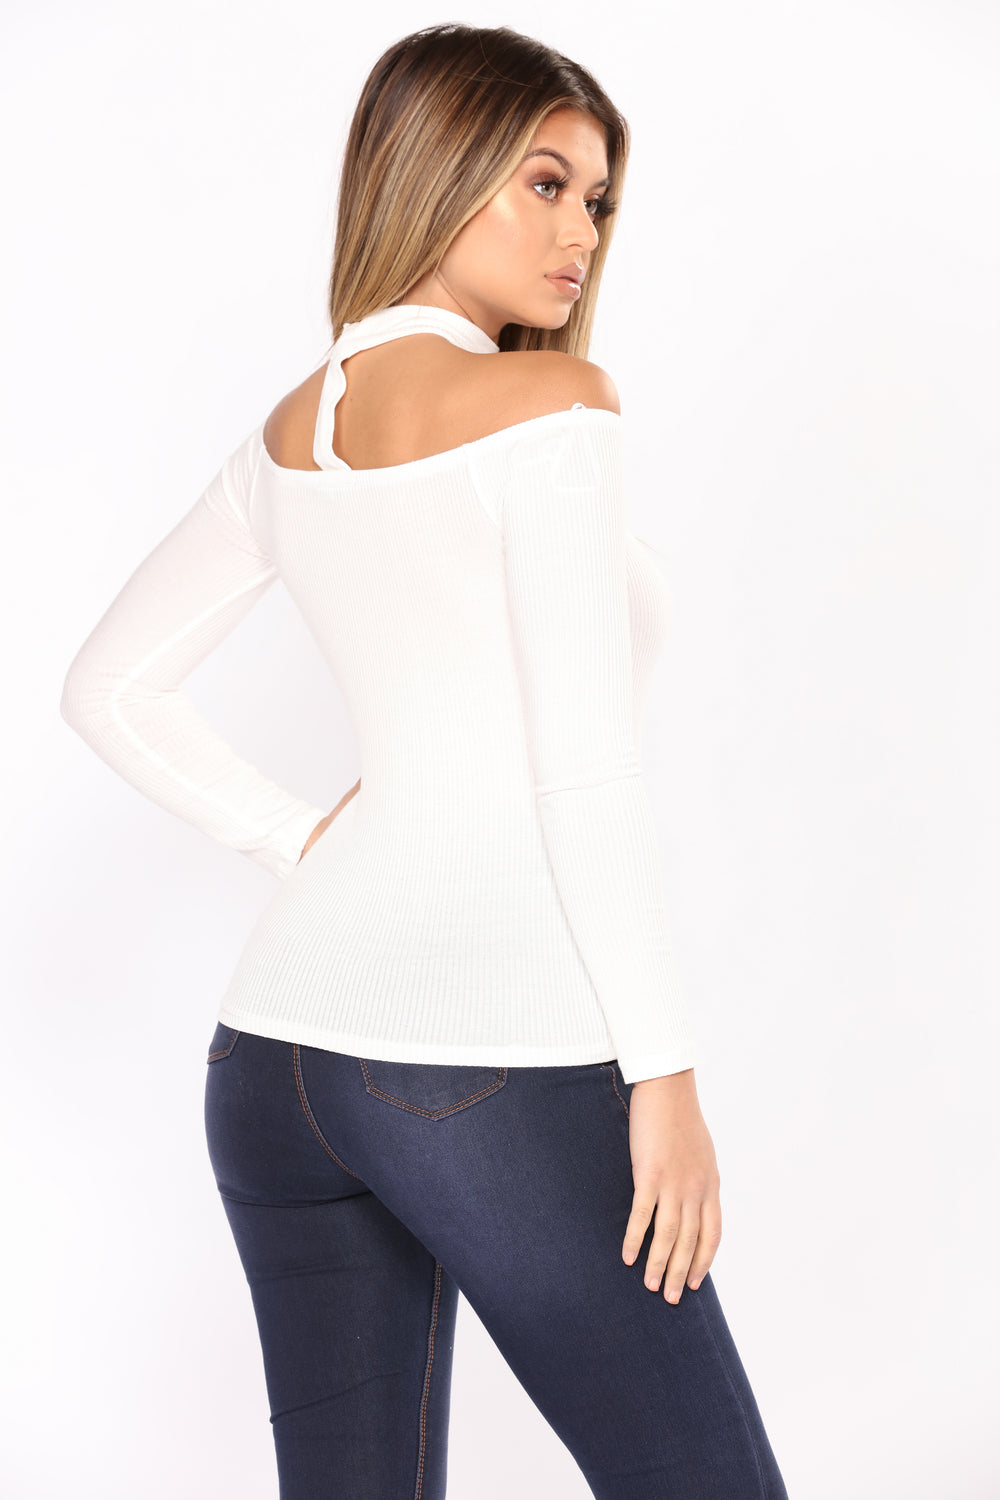 Delina Choker Top - White